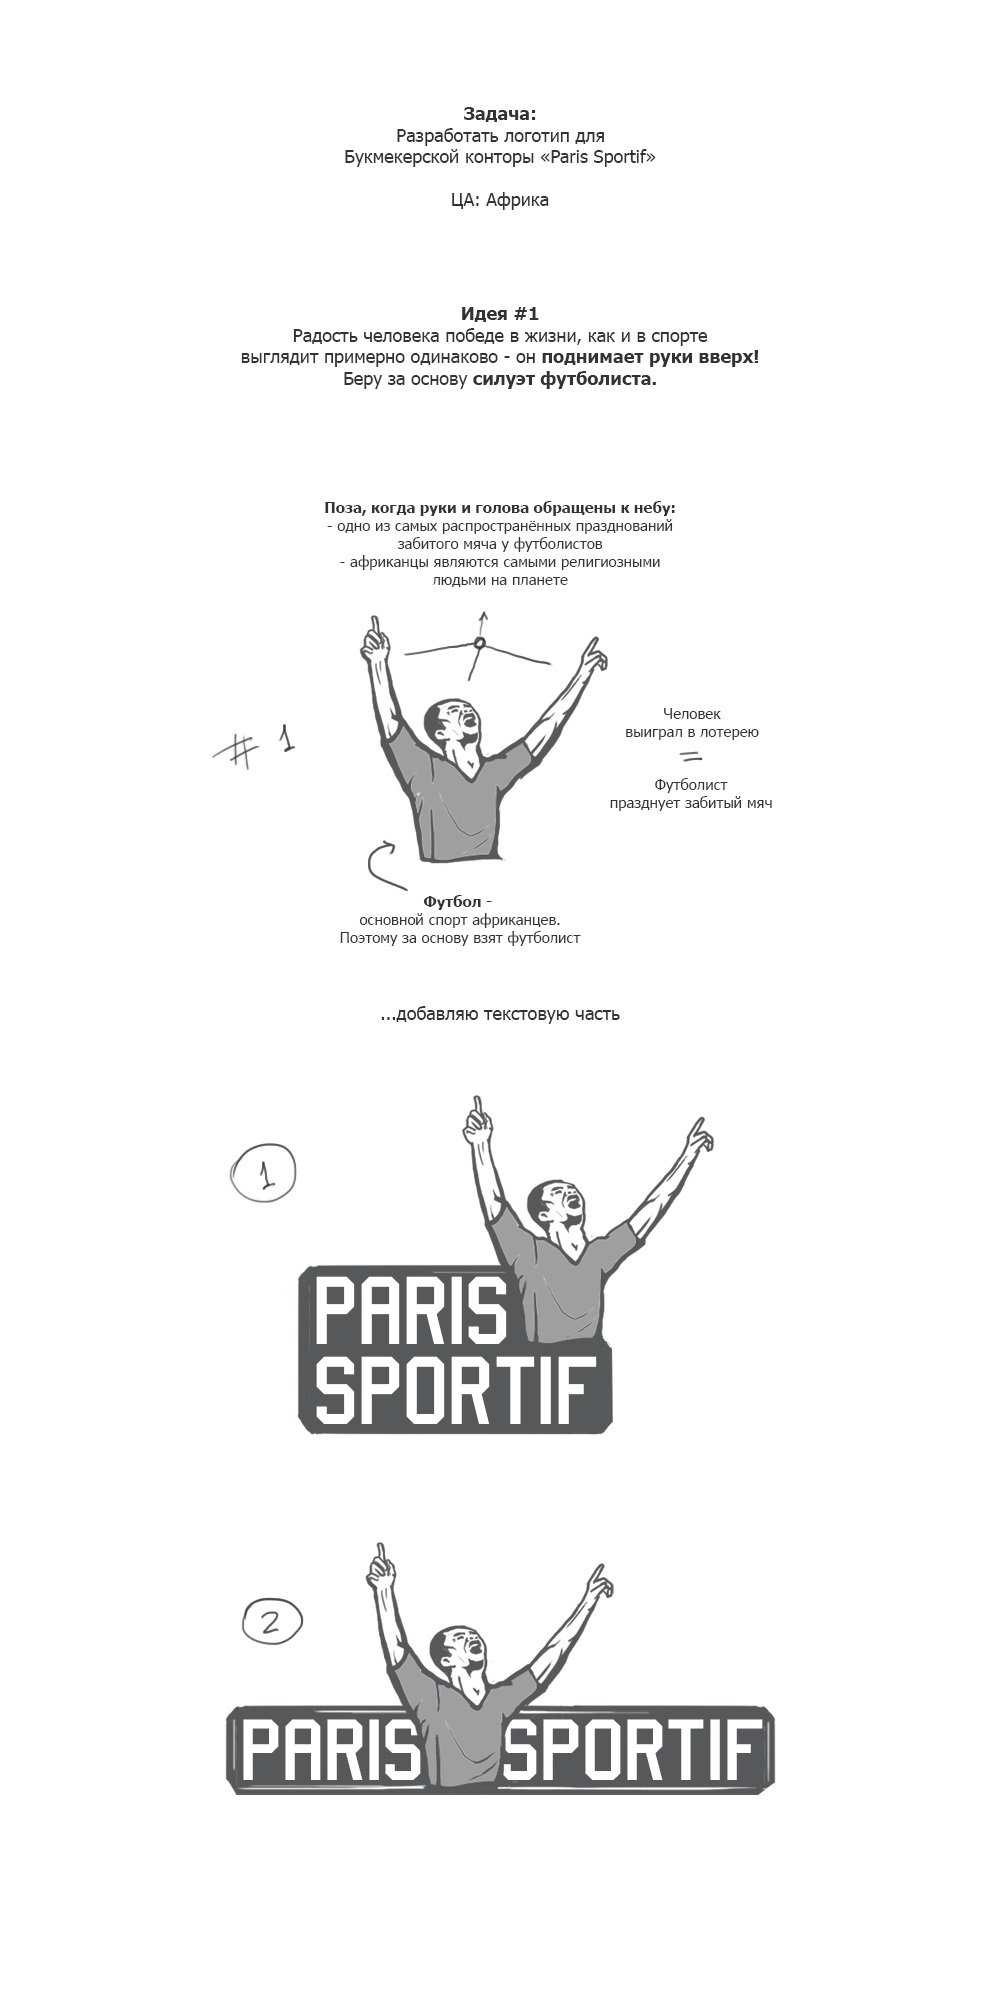 Идея логотипа Paris Sportif 1